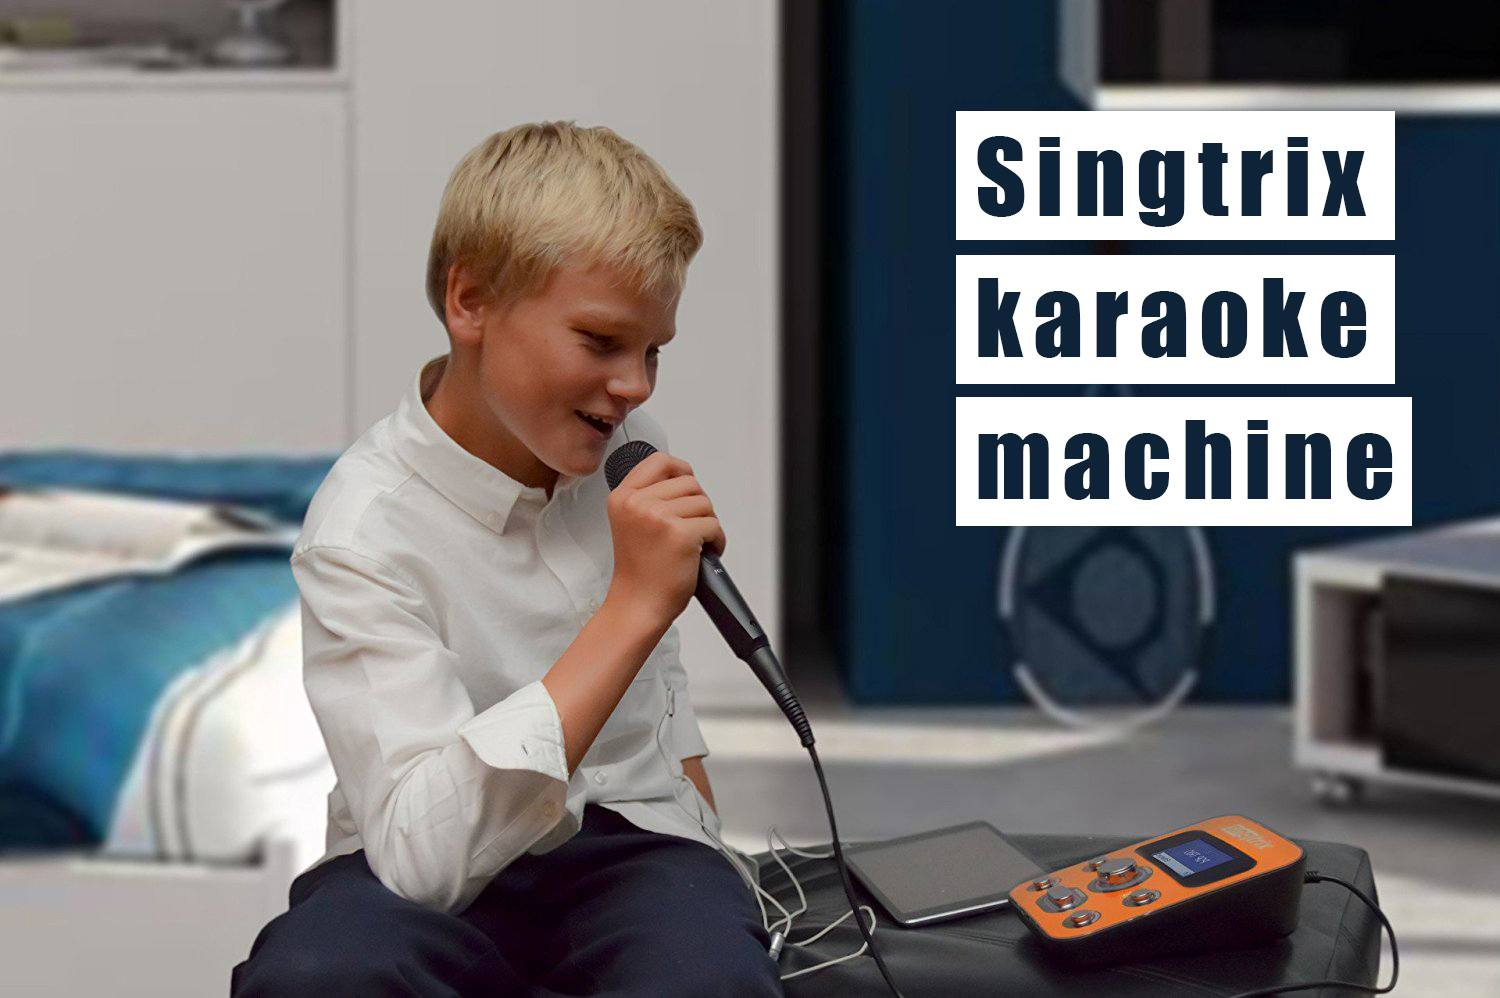 singtrix karaoke machine